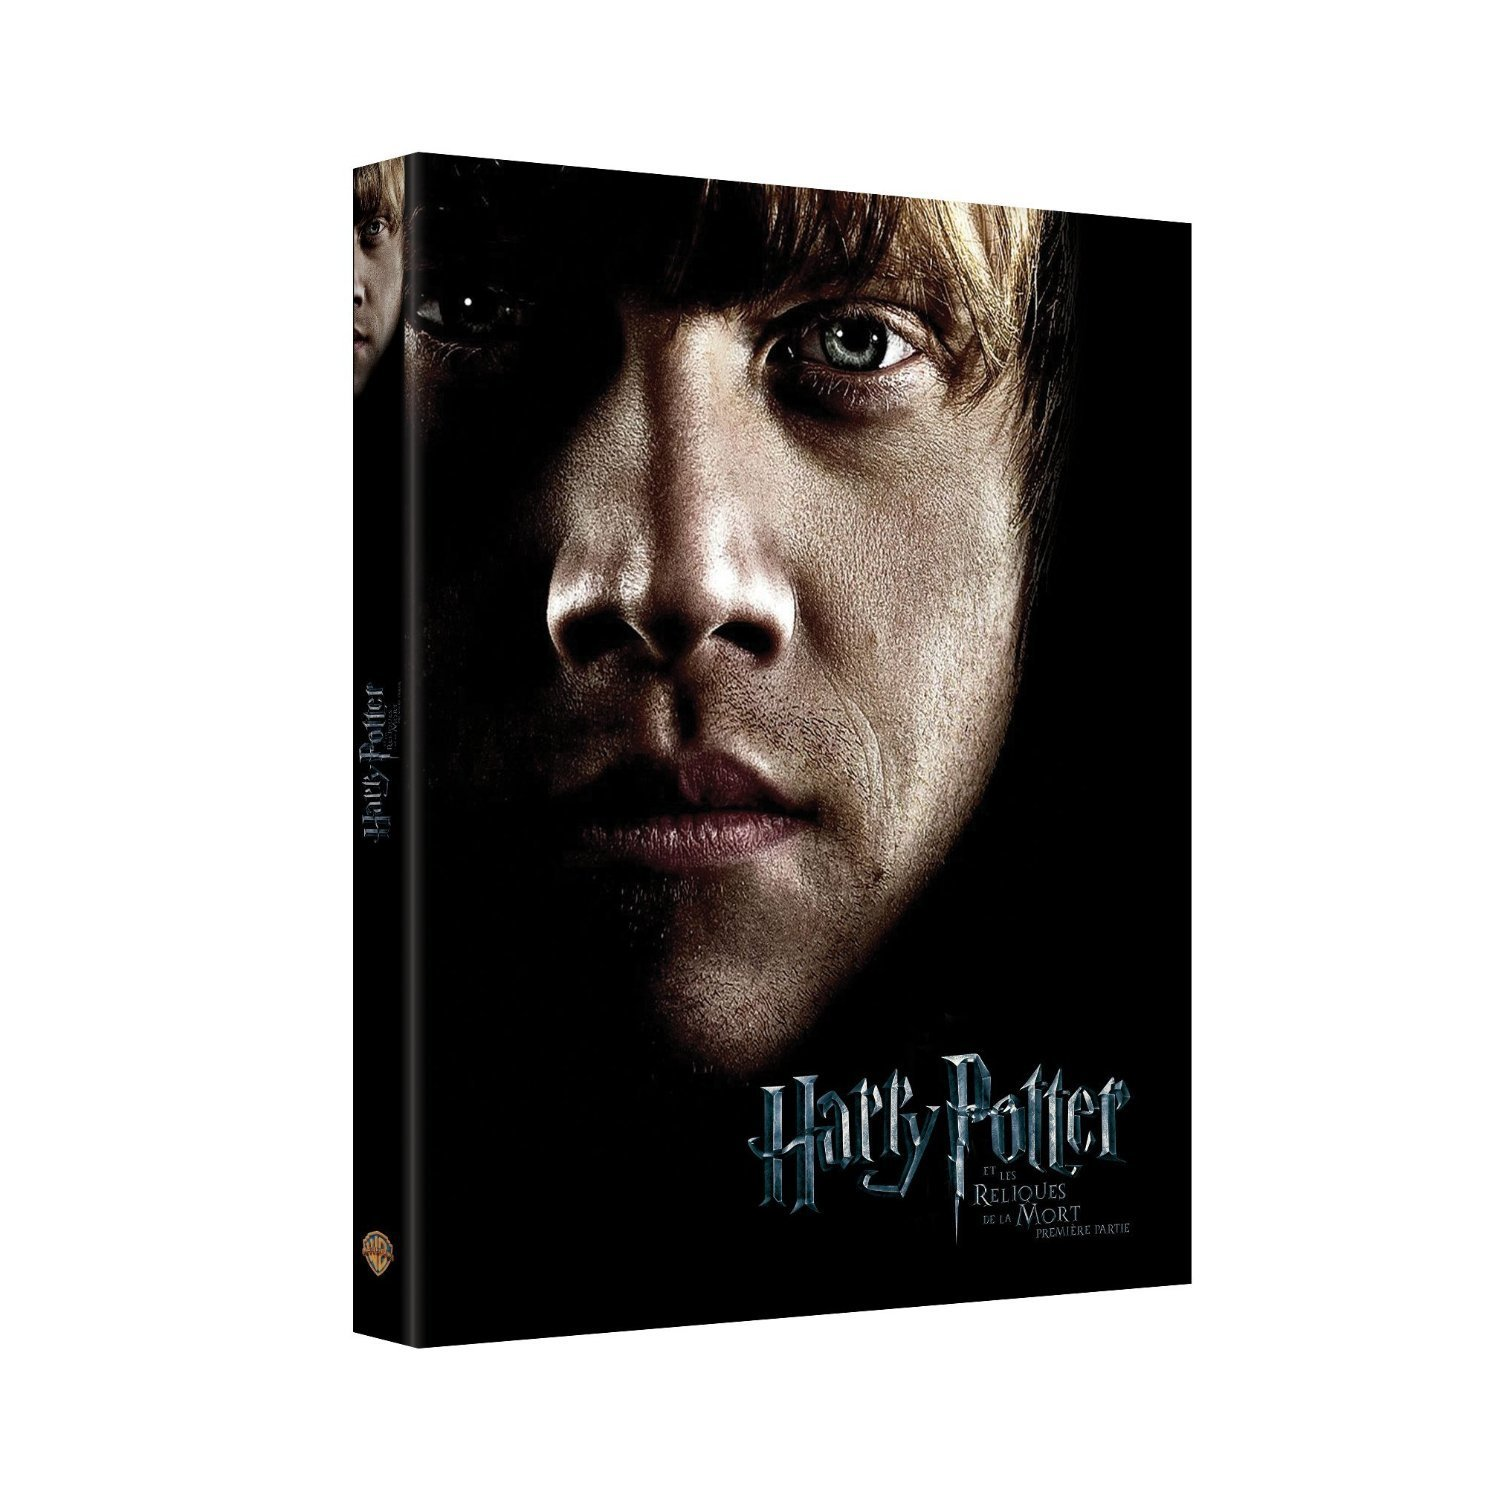 DH 1 DVD Cover